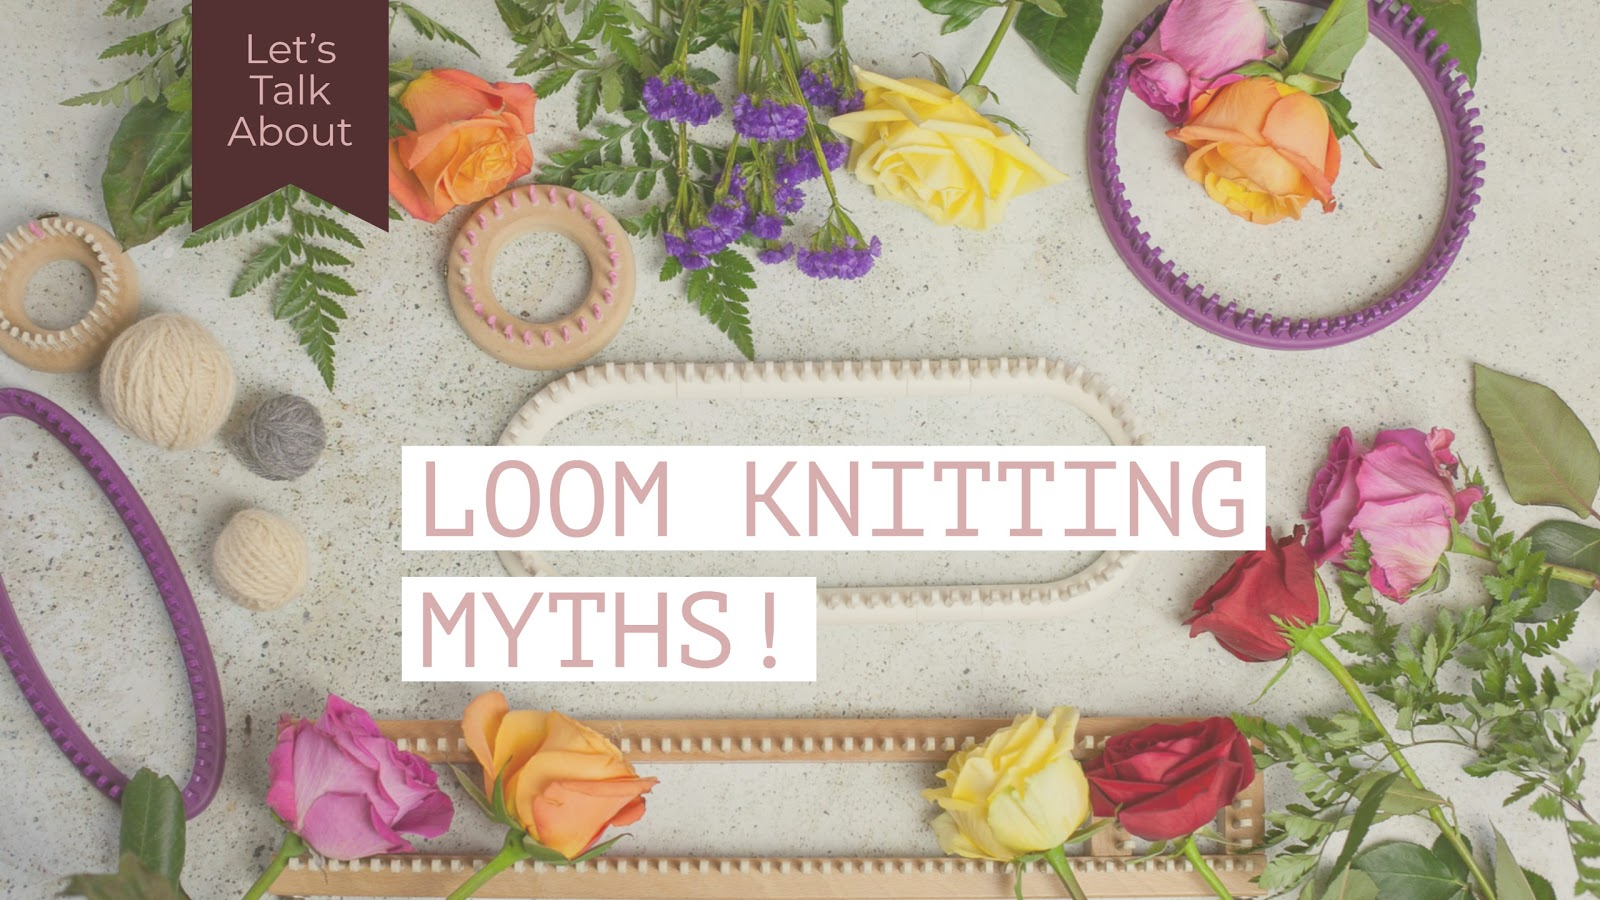 loom knitting myths, loom knitting instruction, answers to most common loom knitting questions, how to loom knit, loom knitting,